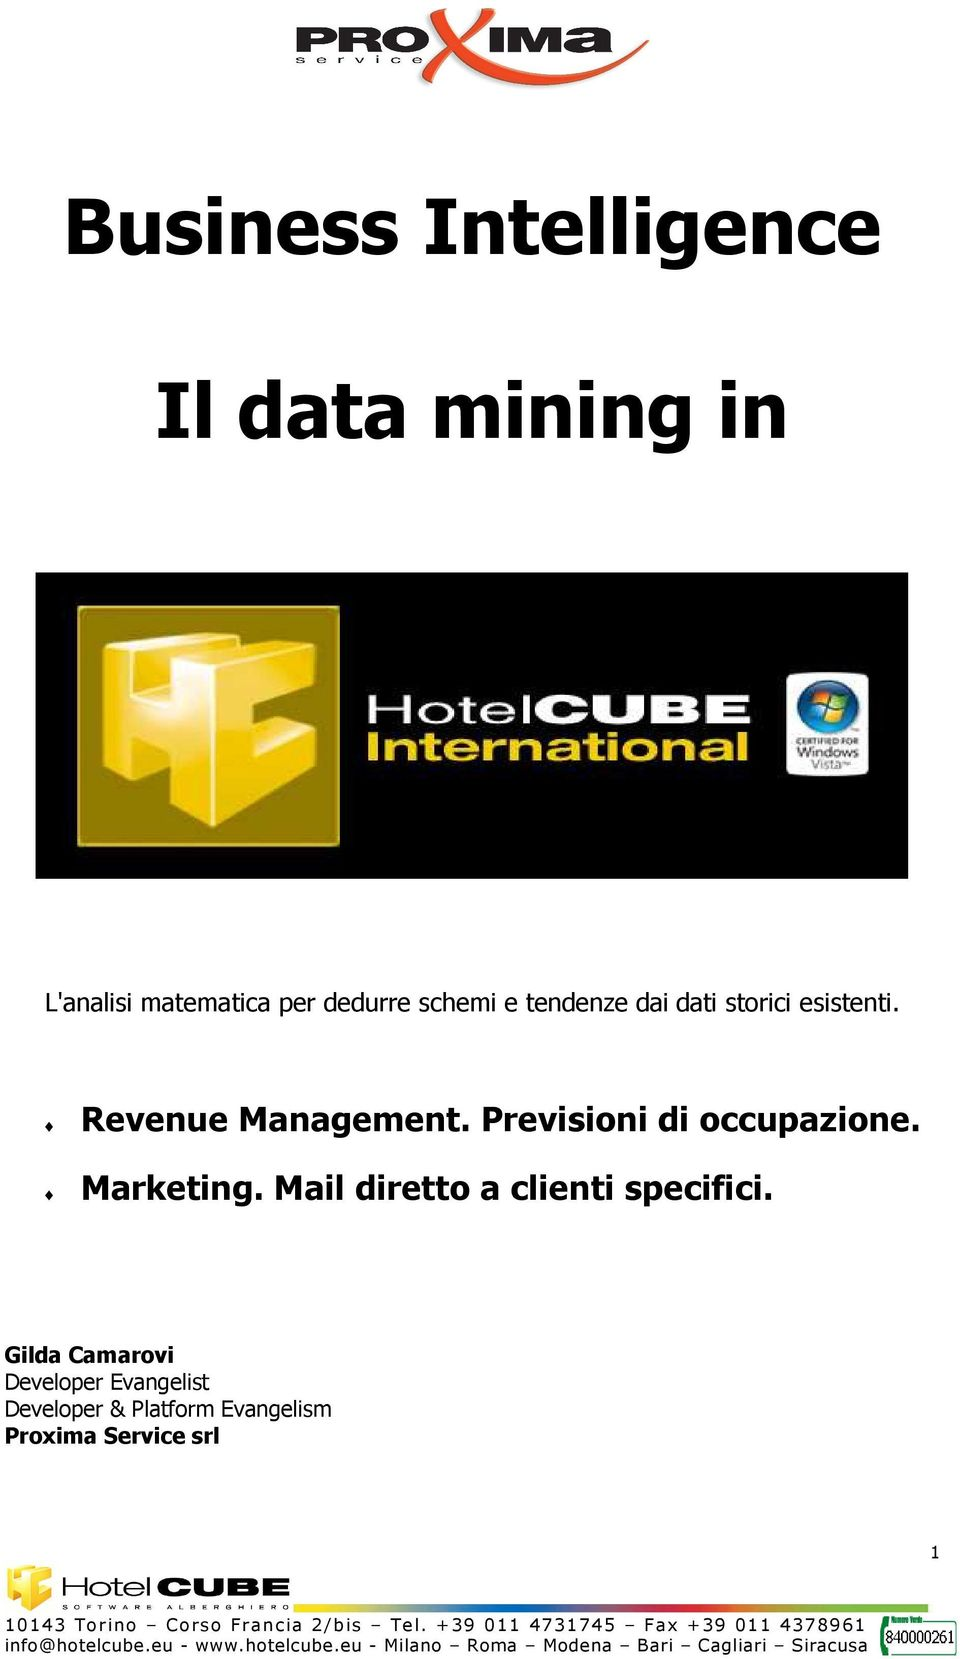 Previsioni di occupazione. Marketing. Mail diretto a clienti specifici.